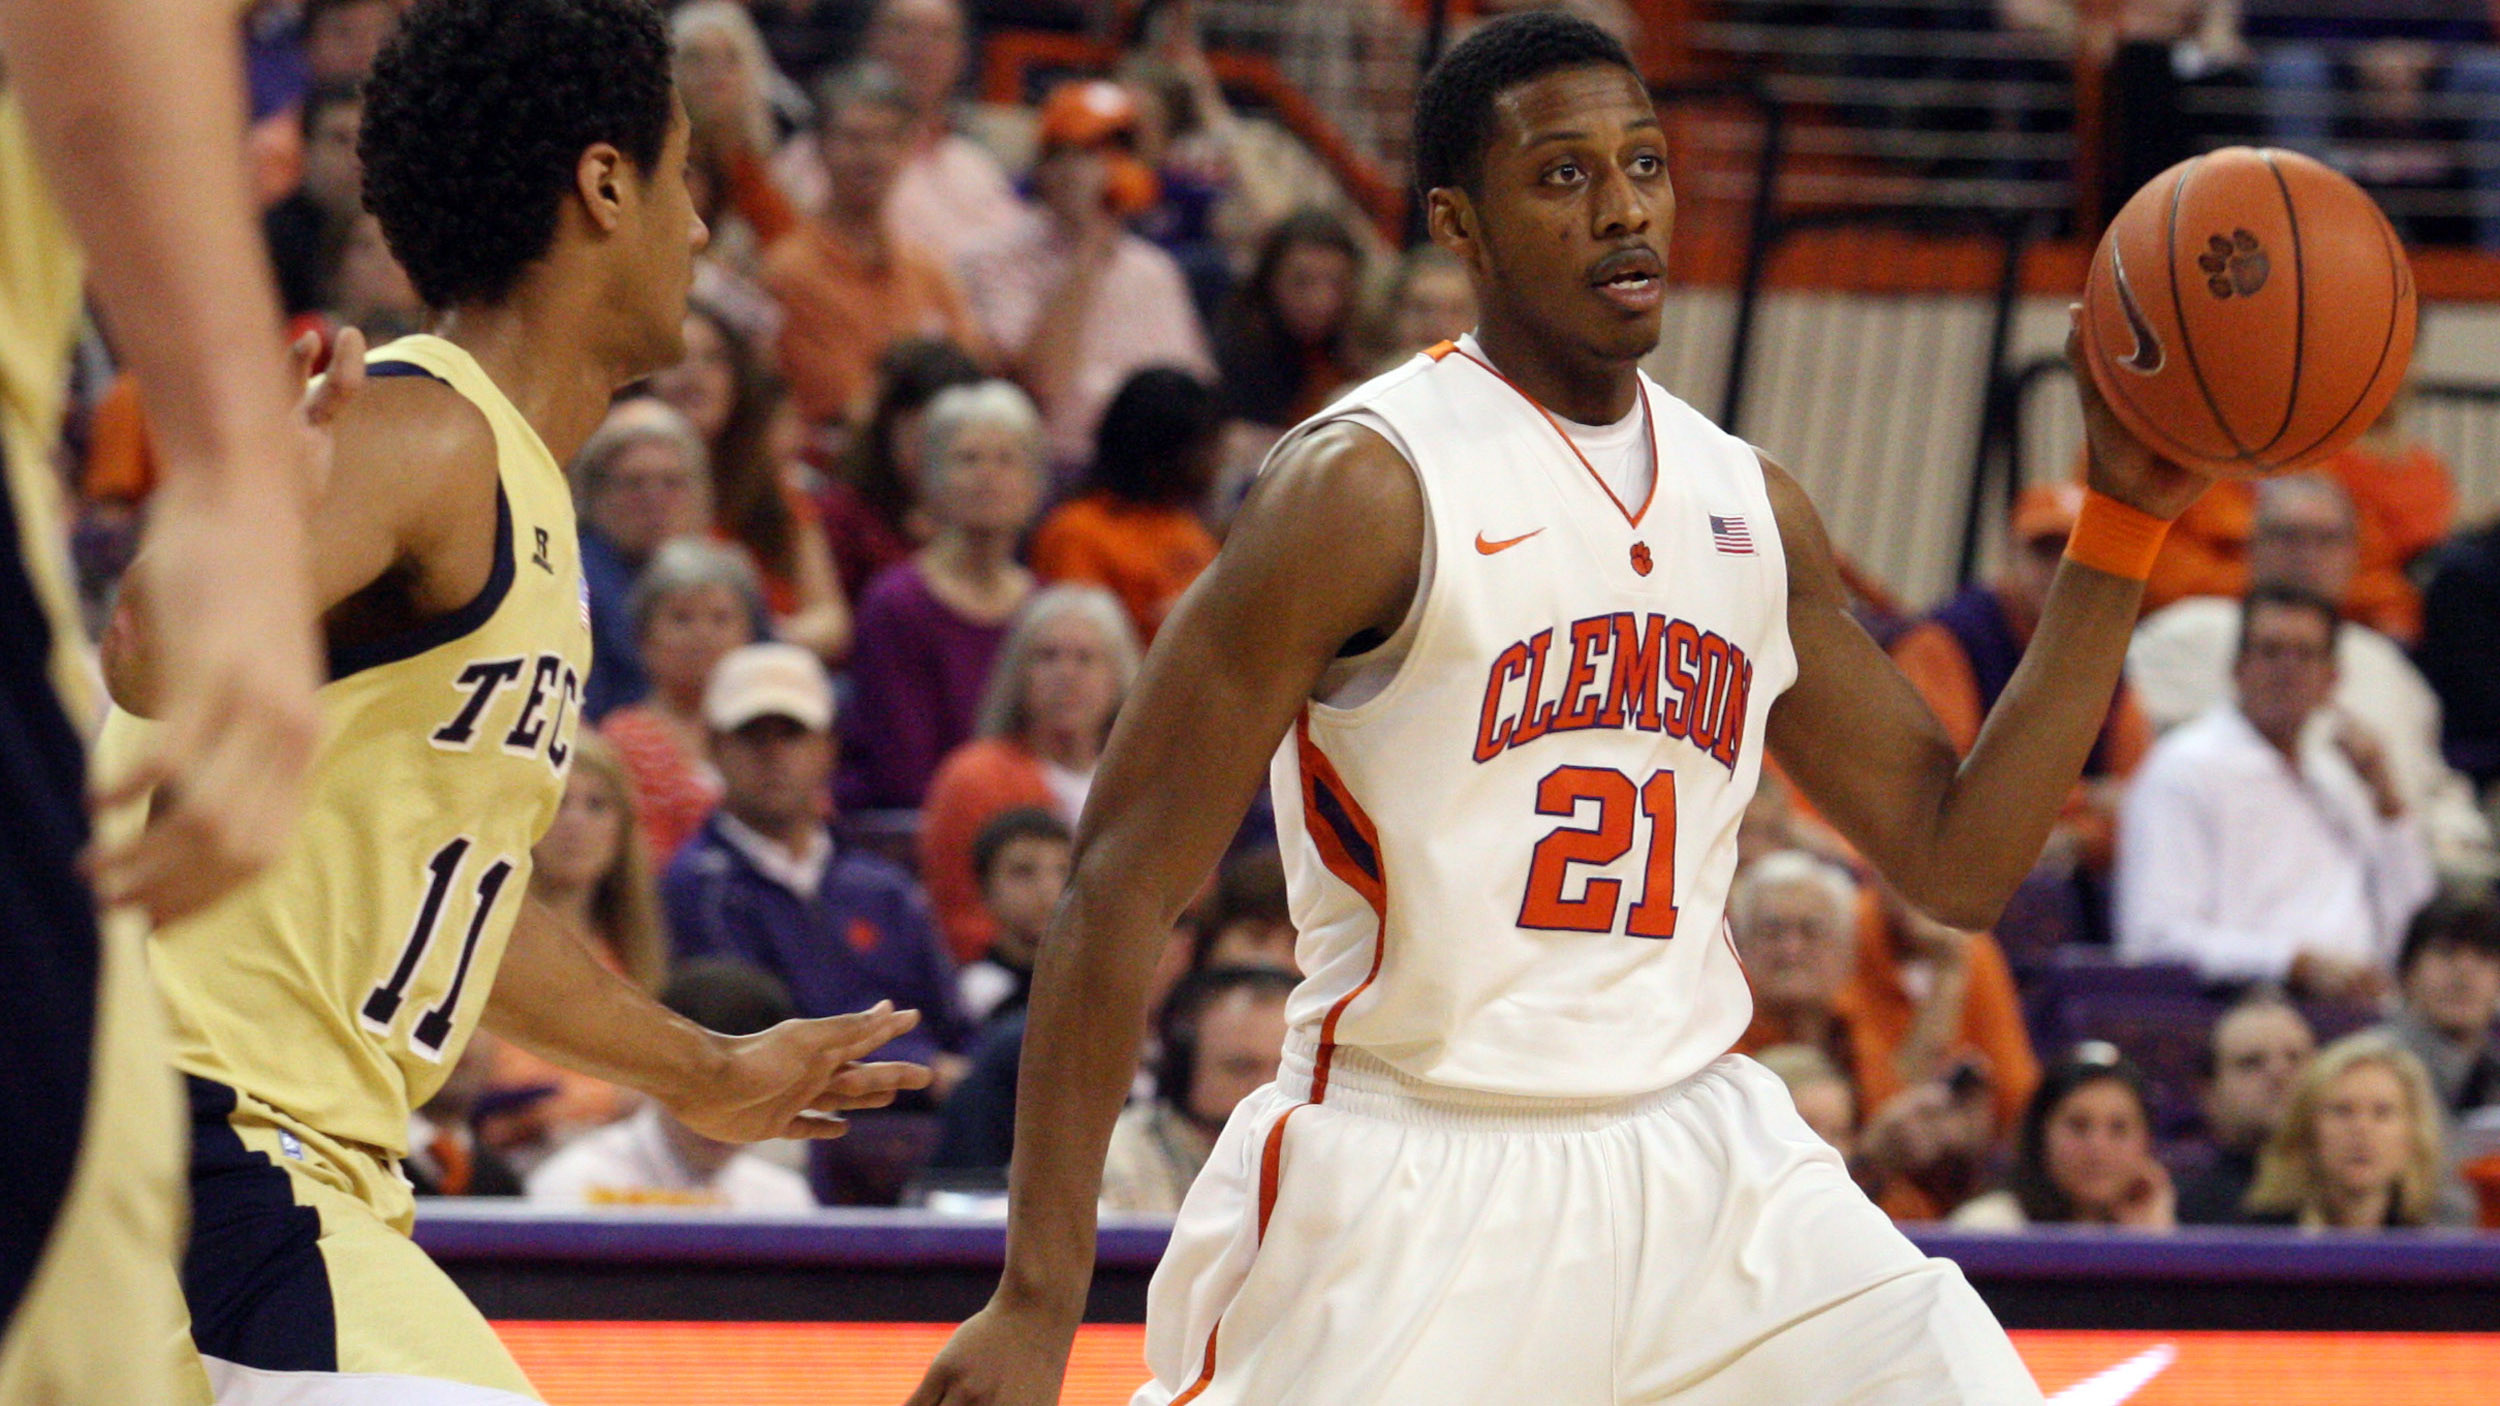 Special Youth Ticket Price Available for Clemson-NC State Basketball Game Sunday, February 10